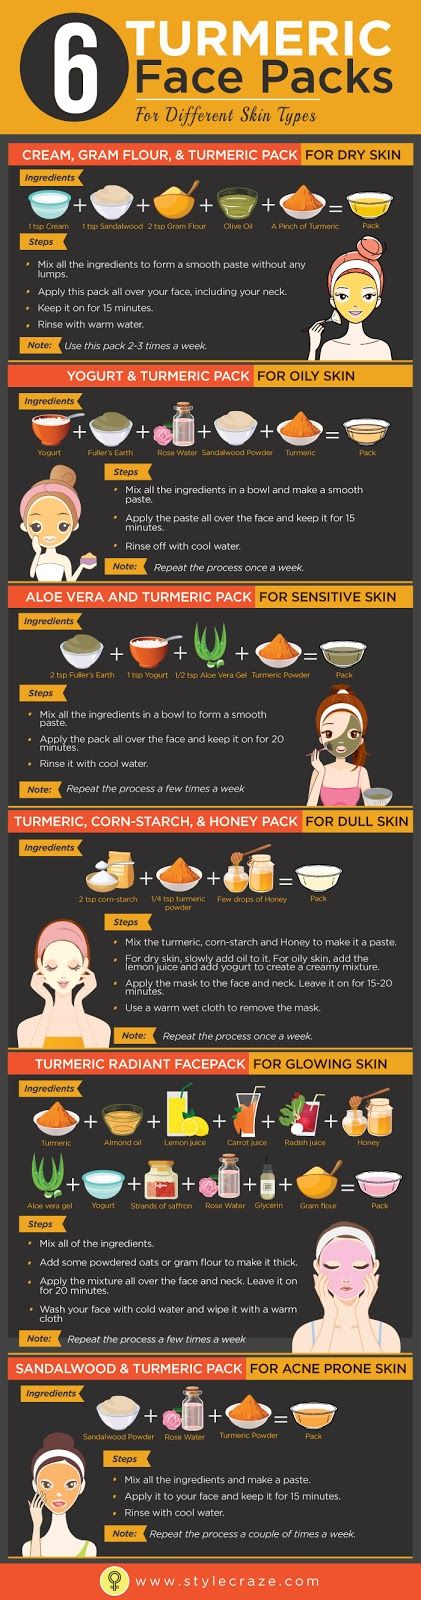 Homemade Turmeric Face Packs For Different Skin Types - Do you fancy an infographic? There are a lot of them online, but if you want your own please visithttp://linfografico.com/en/prices/ Online girano molte infografiche, se ne vuoi realizzare una tutta tua visitahttp://www.linfografico.com/prezzi/